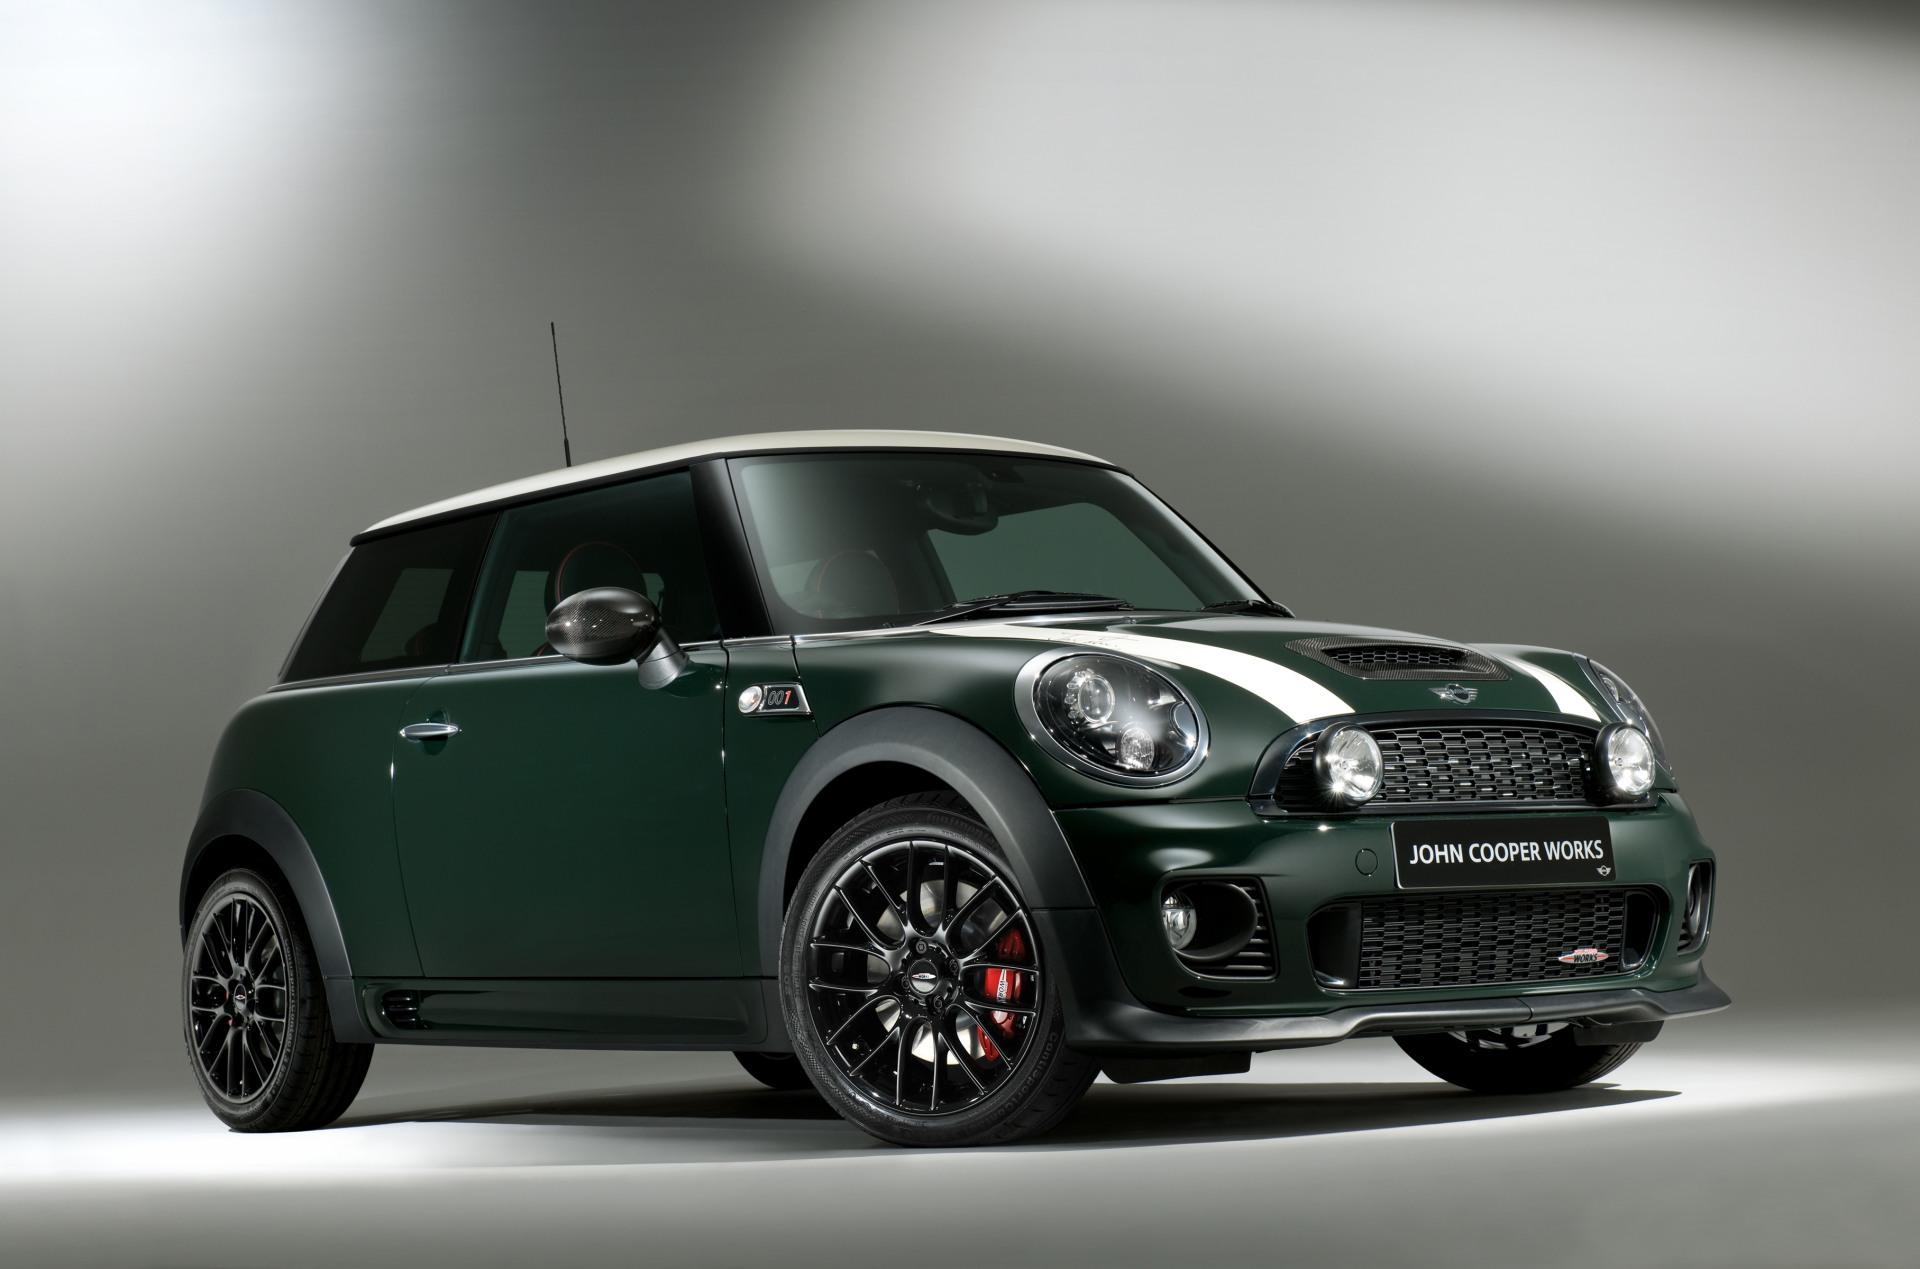 2011 mini john cooper works world championship 50 news and information. Black Bedroom Furniture Sets. Home Design Ideas